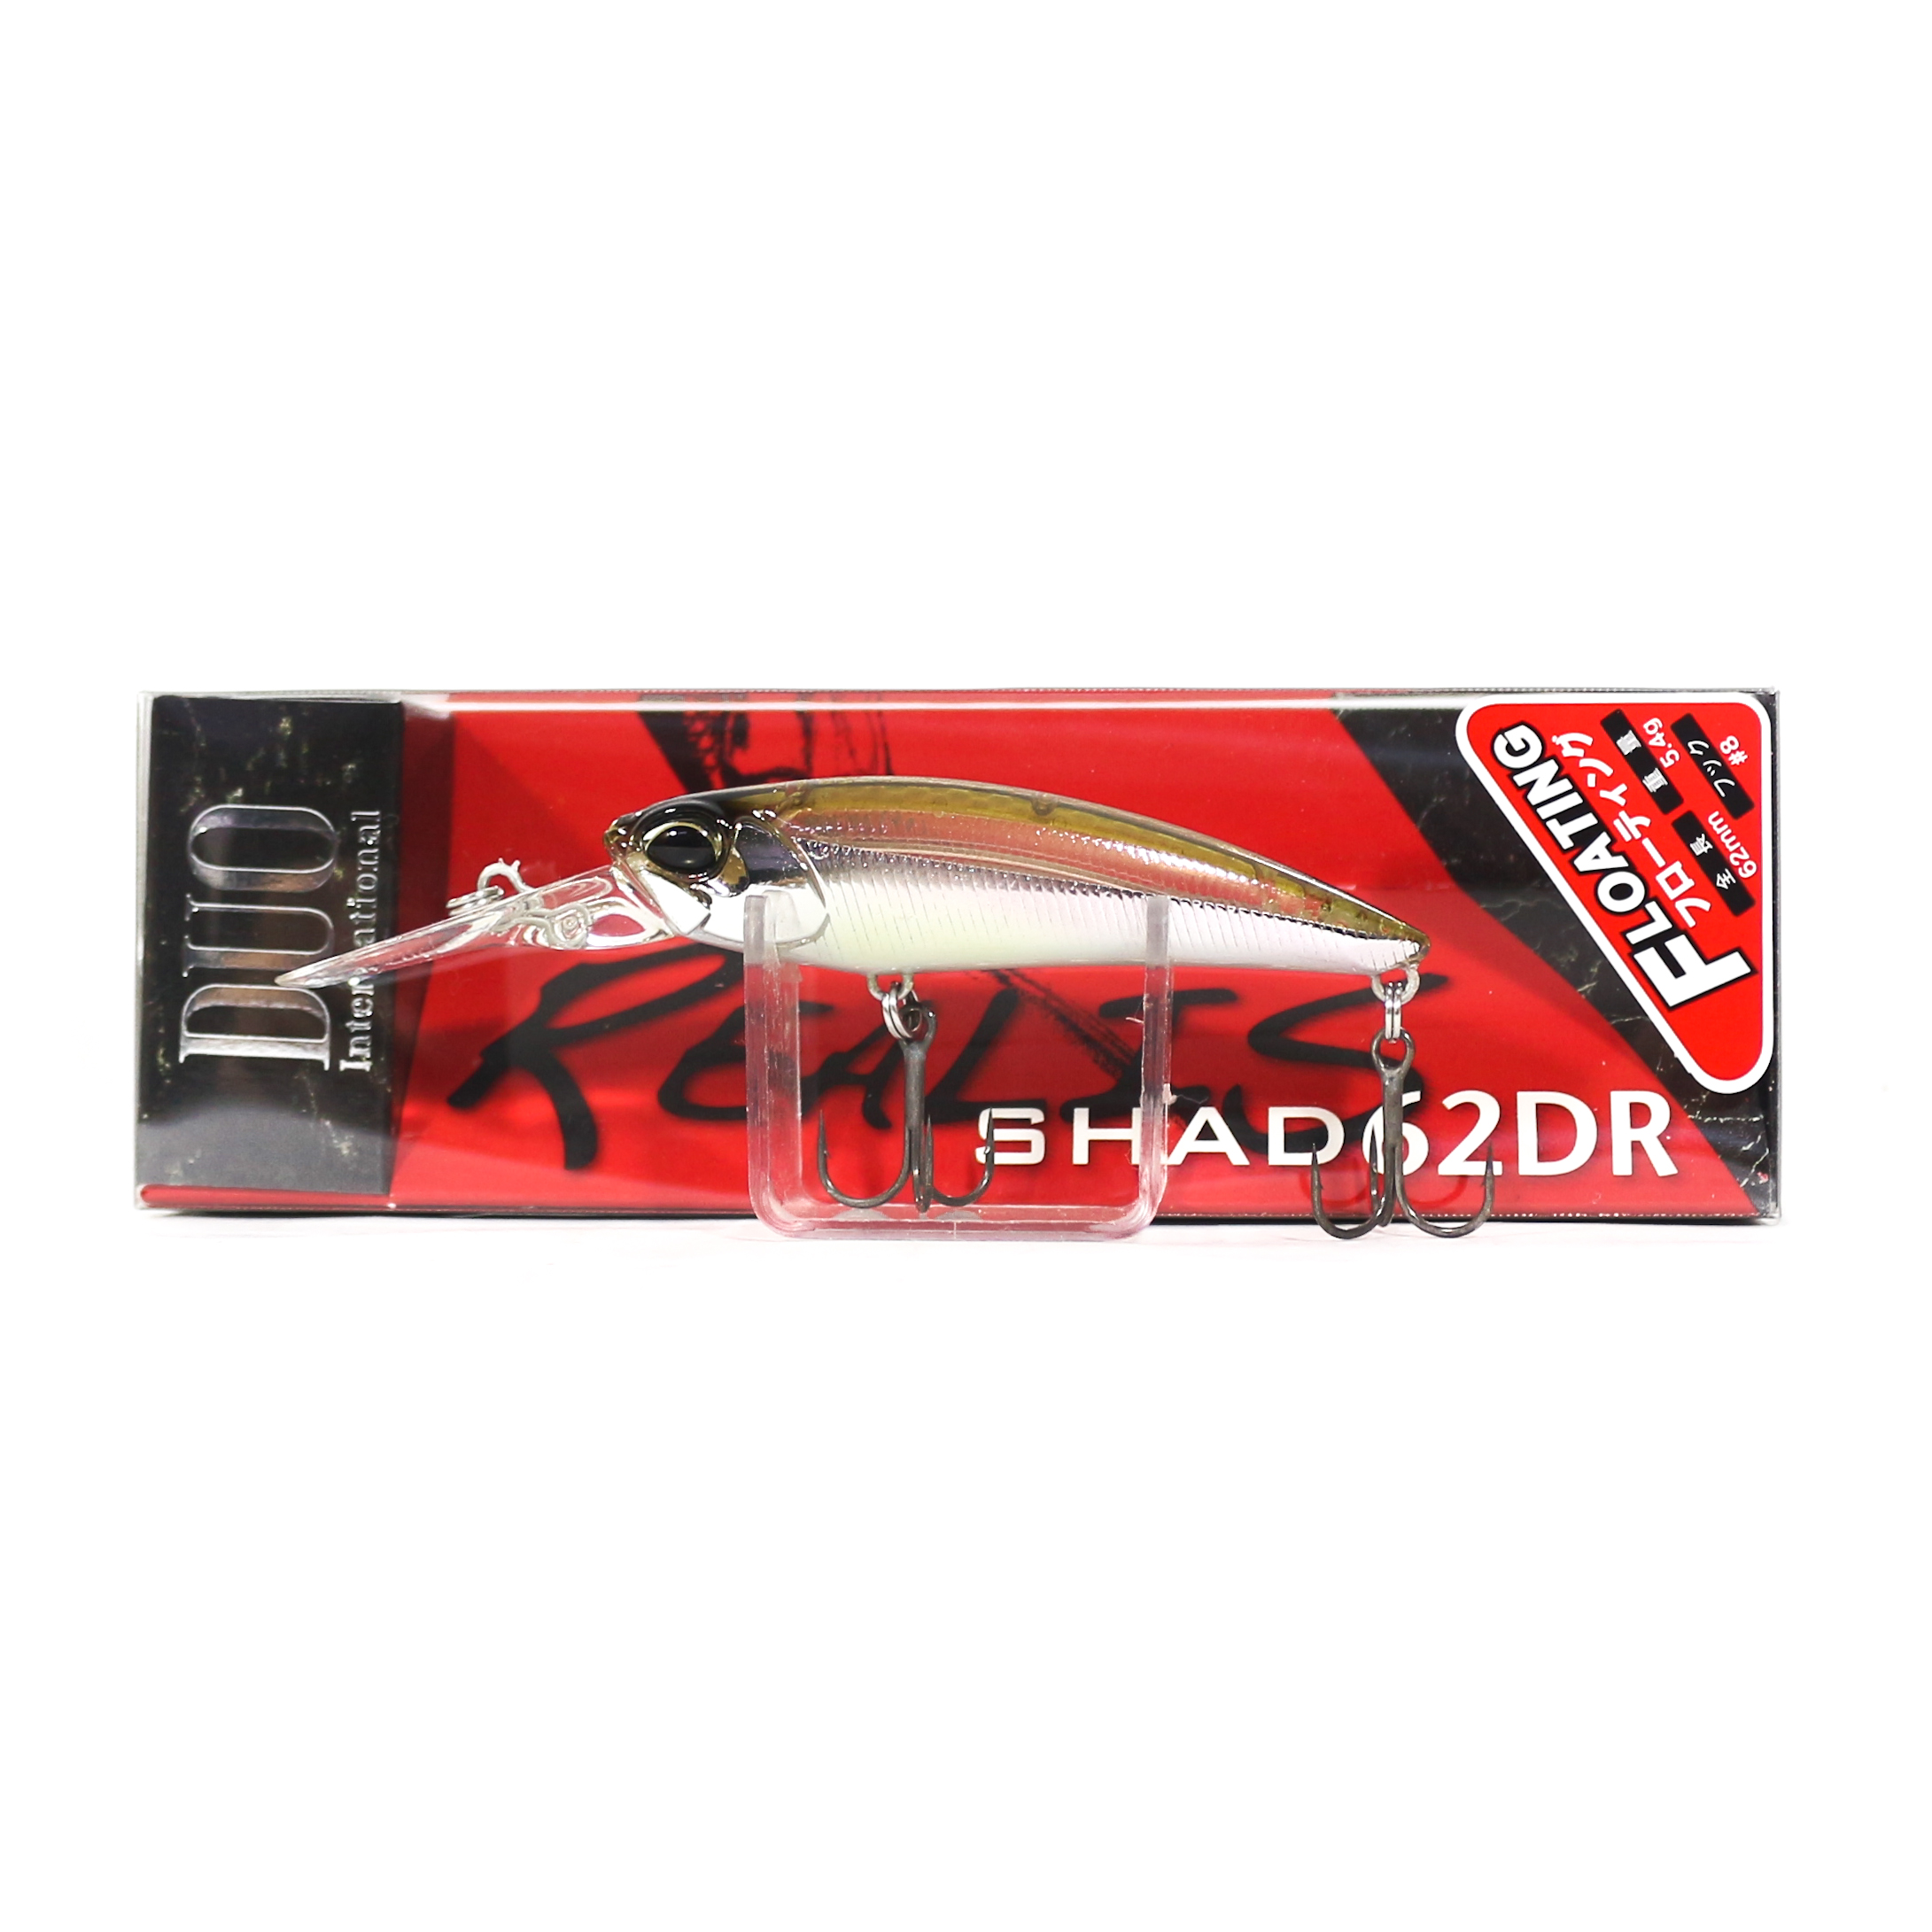 Duo Realis Shad 62 DR F Floating Lure DSH3061 (5826)